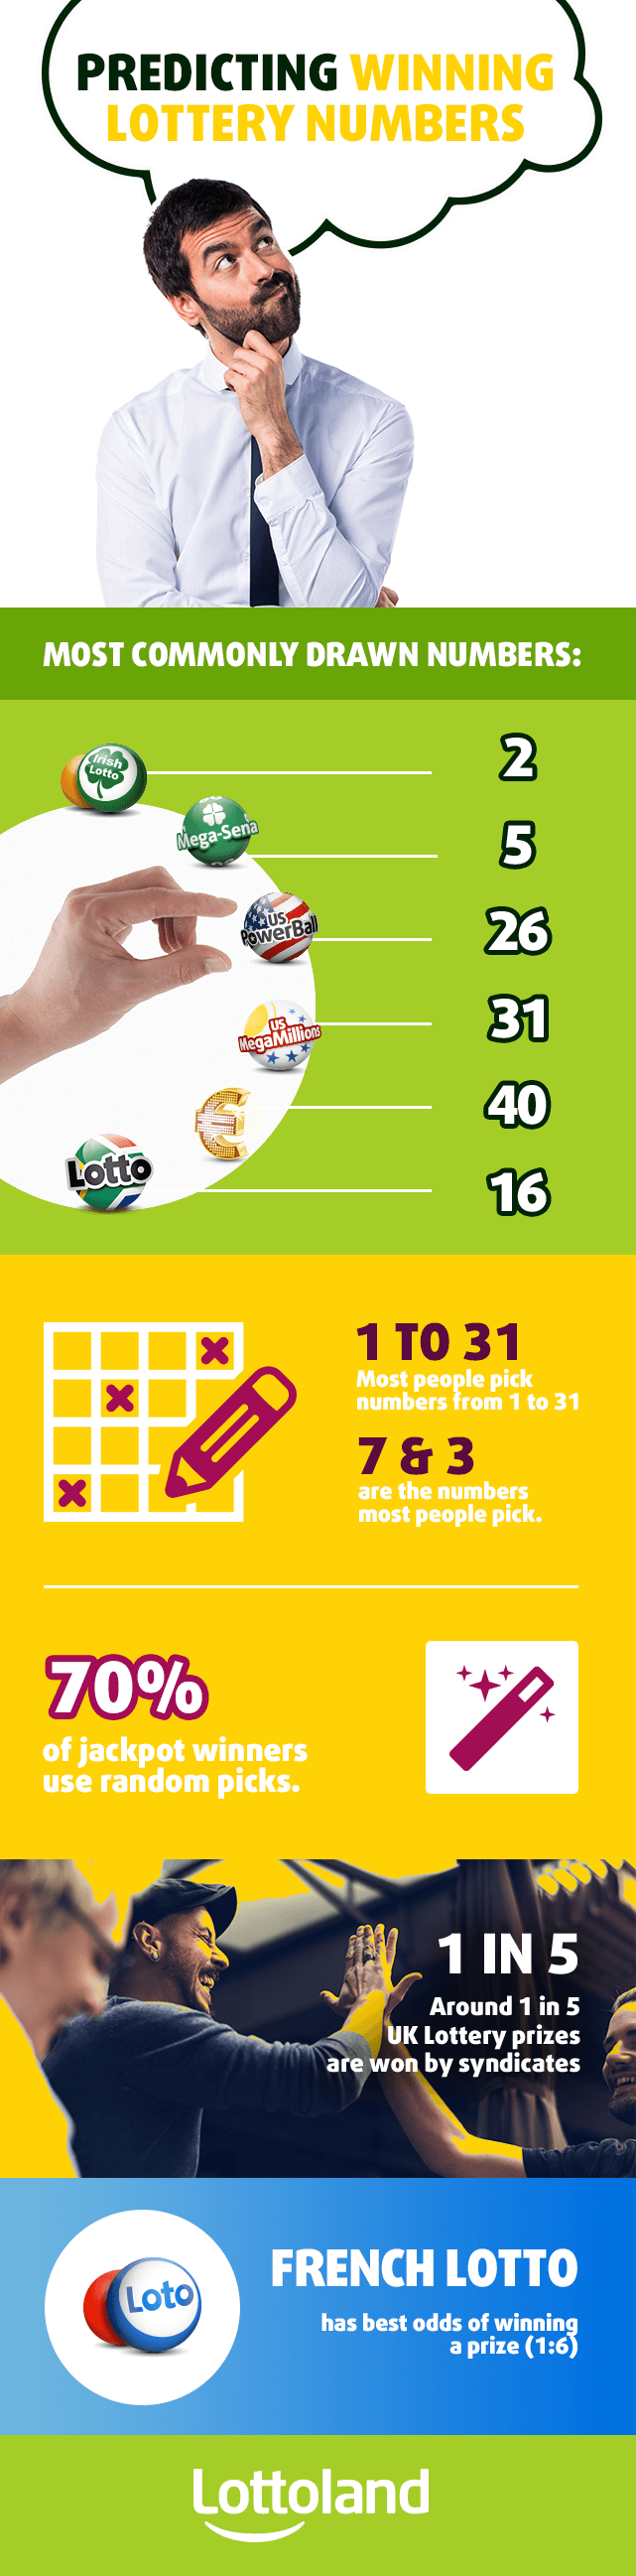 Can Lotto Predictions Help You Win The Jackpot?